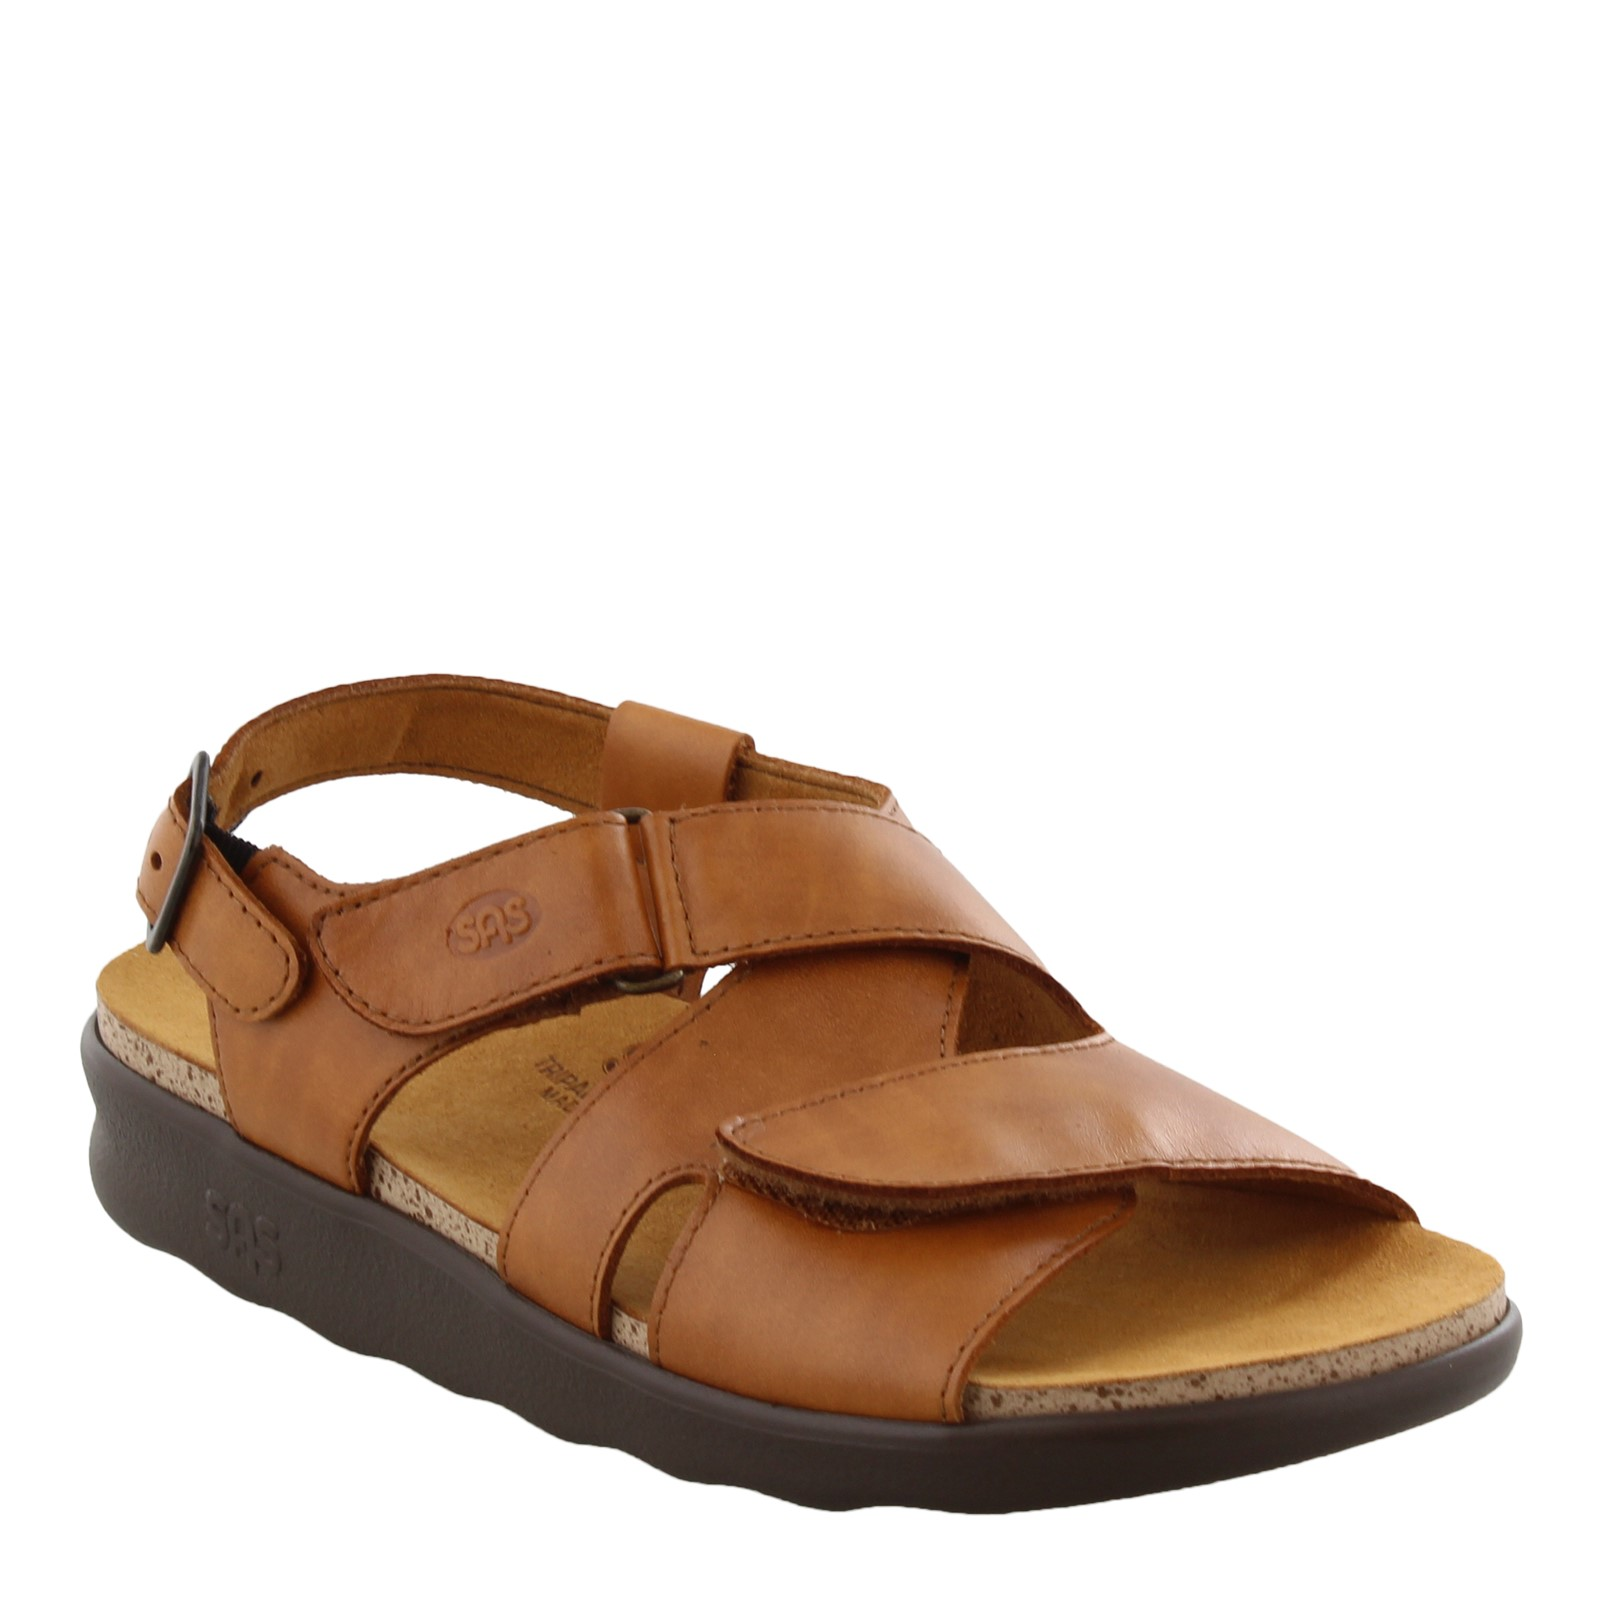 Women's SAS, Huggy Cross Strap Sandal